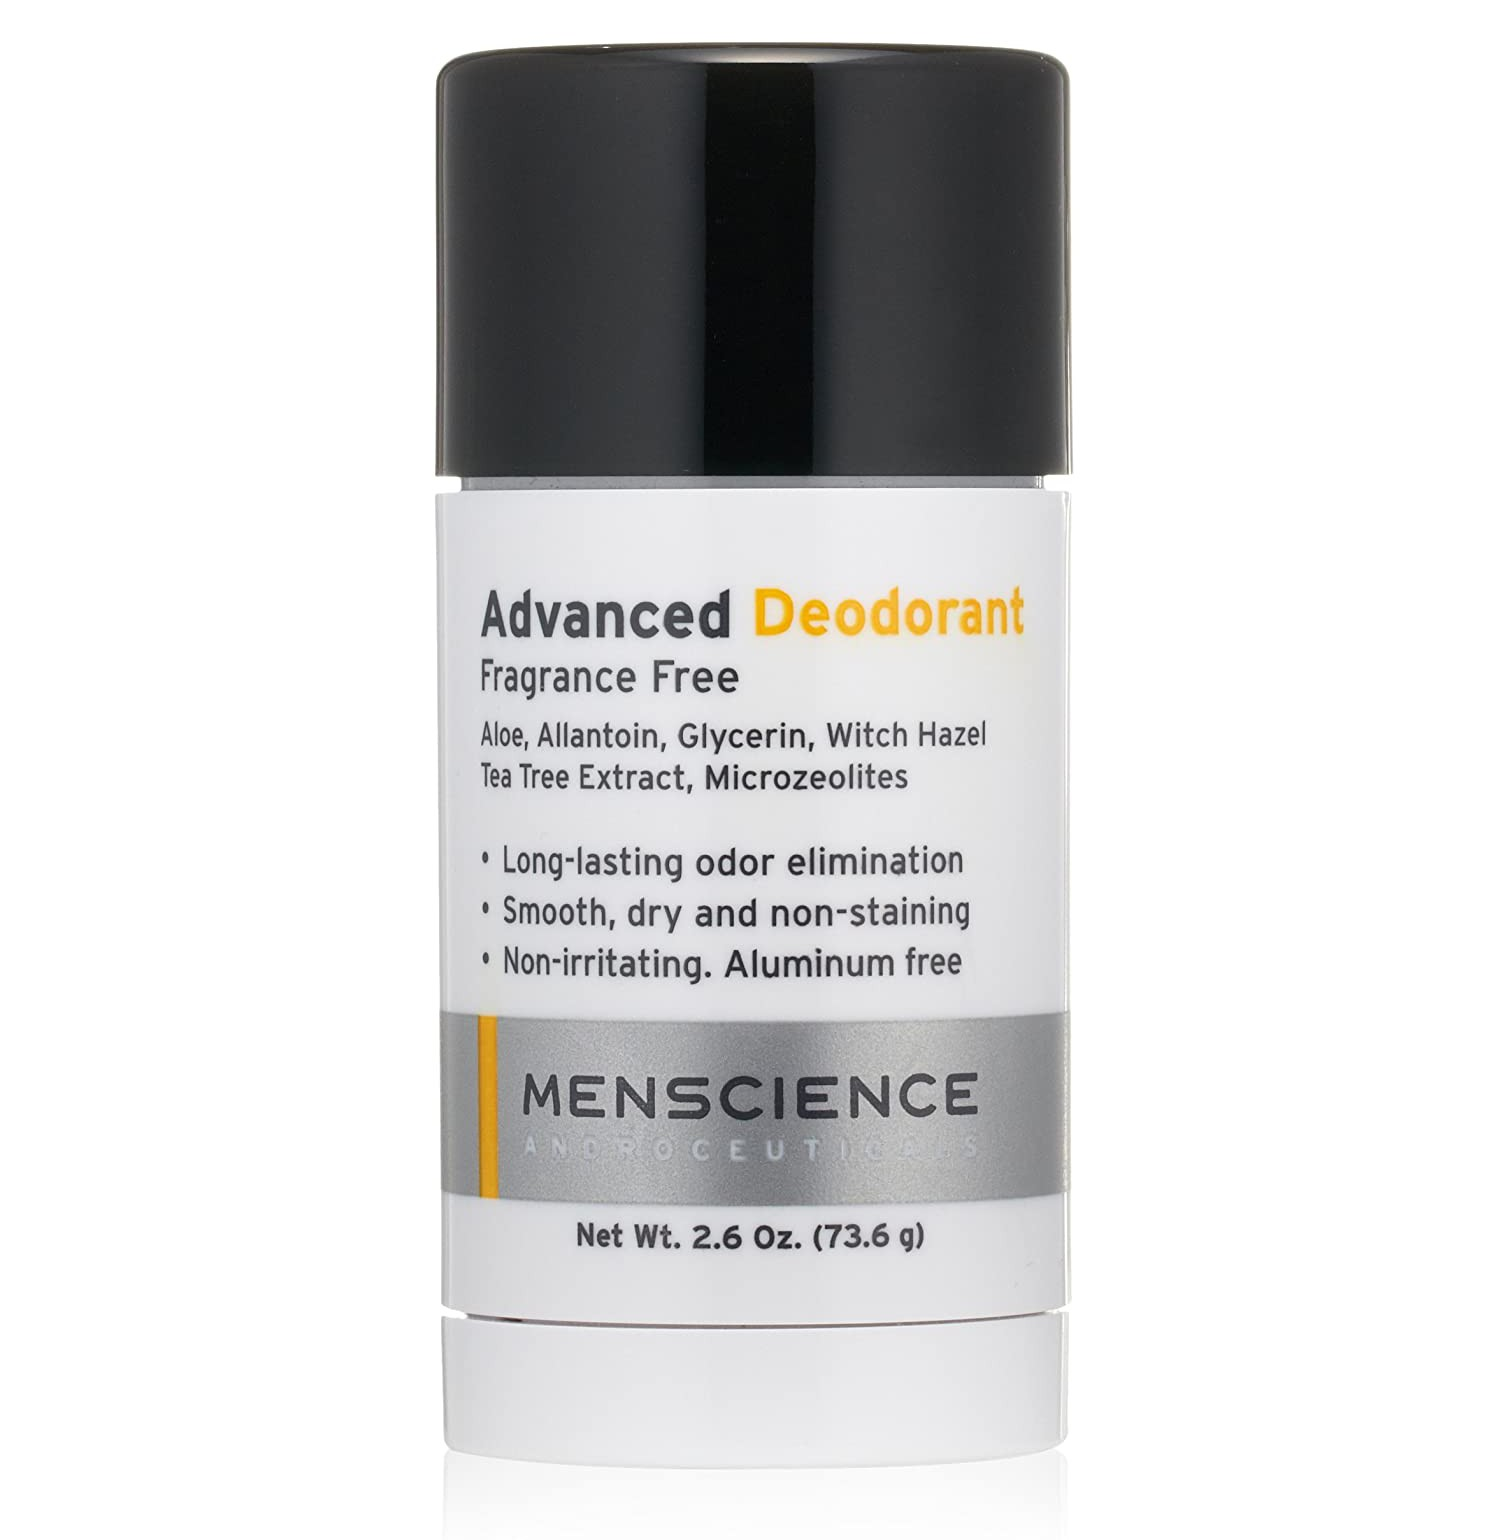 MenScience Androceuticals Advanced